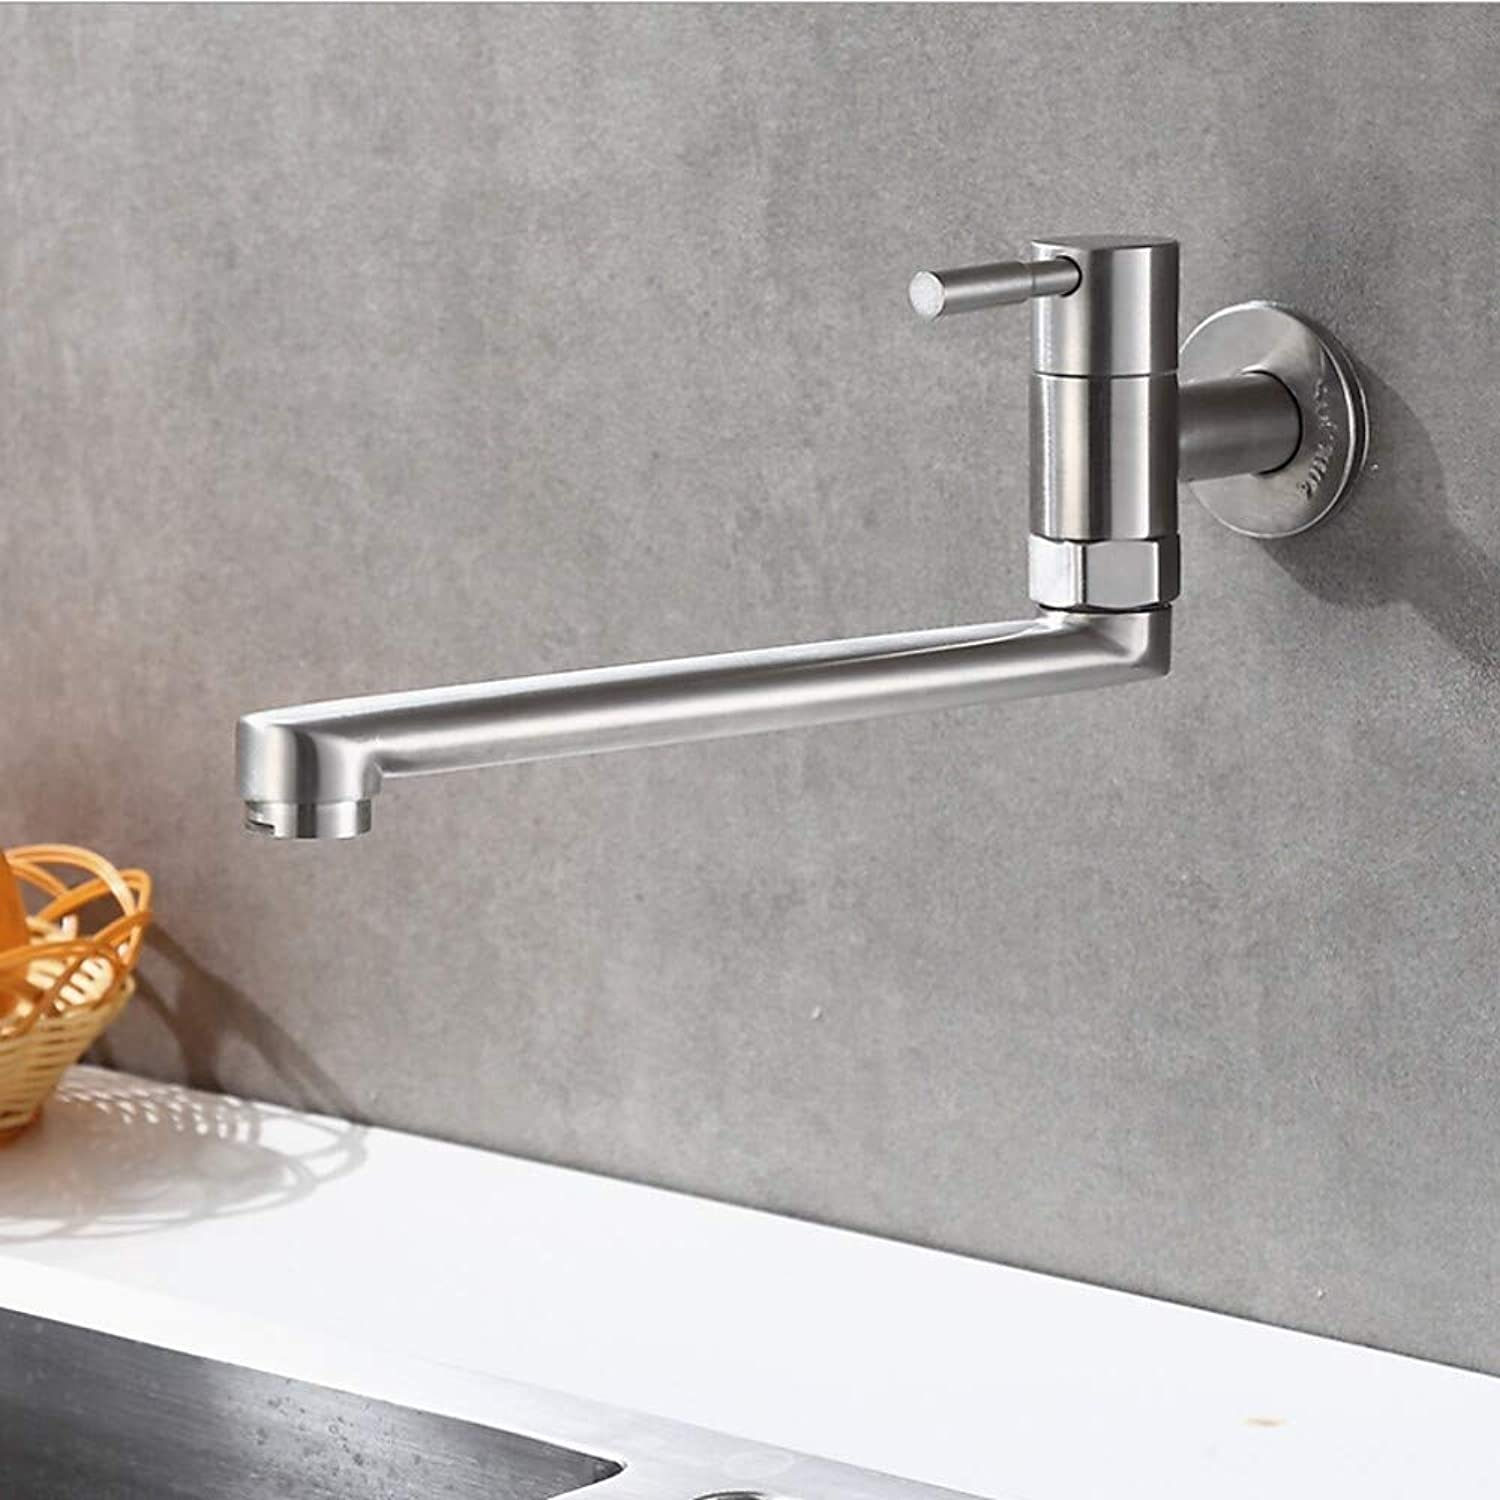 Wghz Kitchen Faucet - Single Lever Mixer Stainless Steel Spout Modern Kitchen Faucets  Electroplate